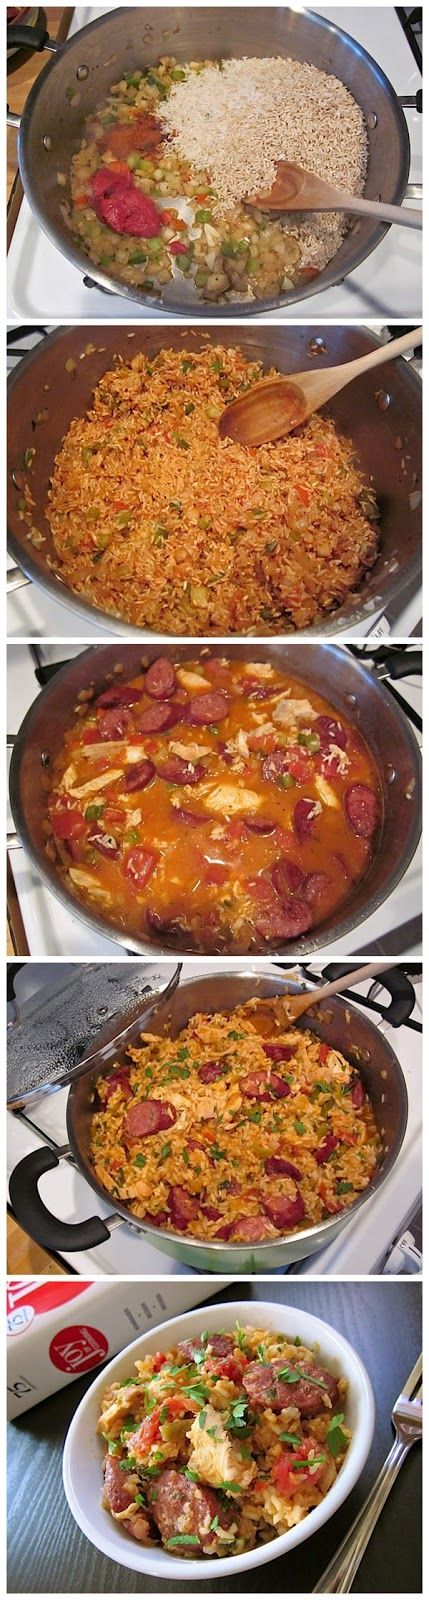 Jambalaya: 1 lb cooked chicken, 1 lb smoked sausage, 4 cloves garlic, 12 oz seasoning mix (onion , bell pepper,celery),  2 C long grain rice,1/2 -1 tap cayenne pepper, 2tbsp tomato paste,31/2 C water, 2 bay leaves&1 can dices tomatoes,1/2tsp dried thyme, parsley